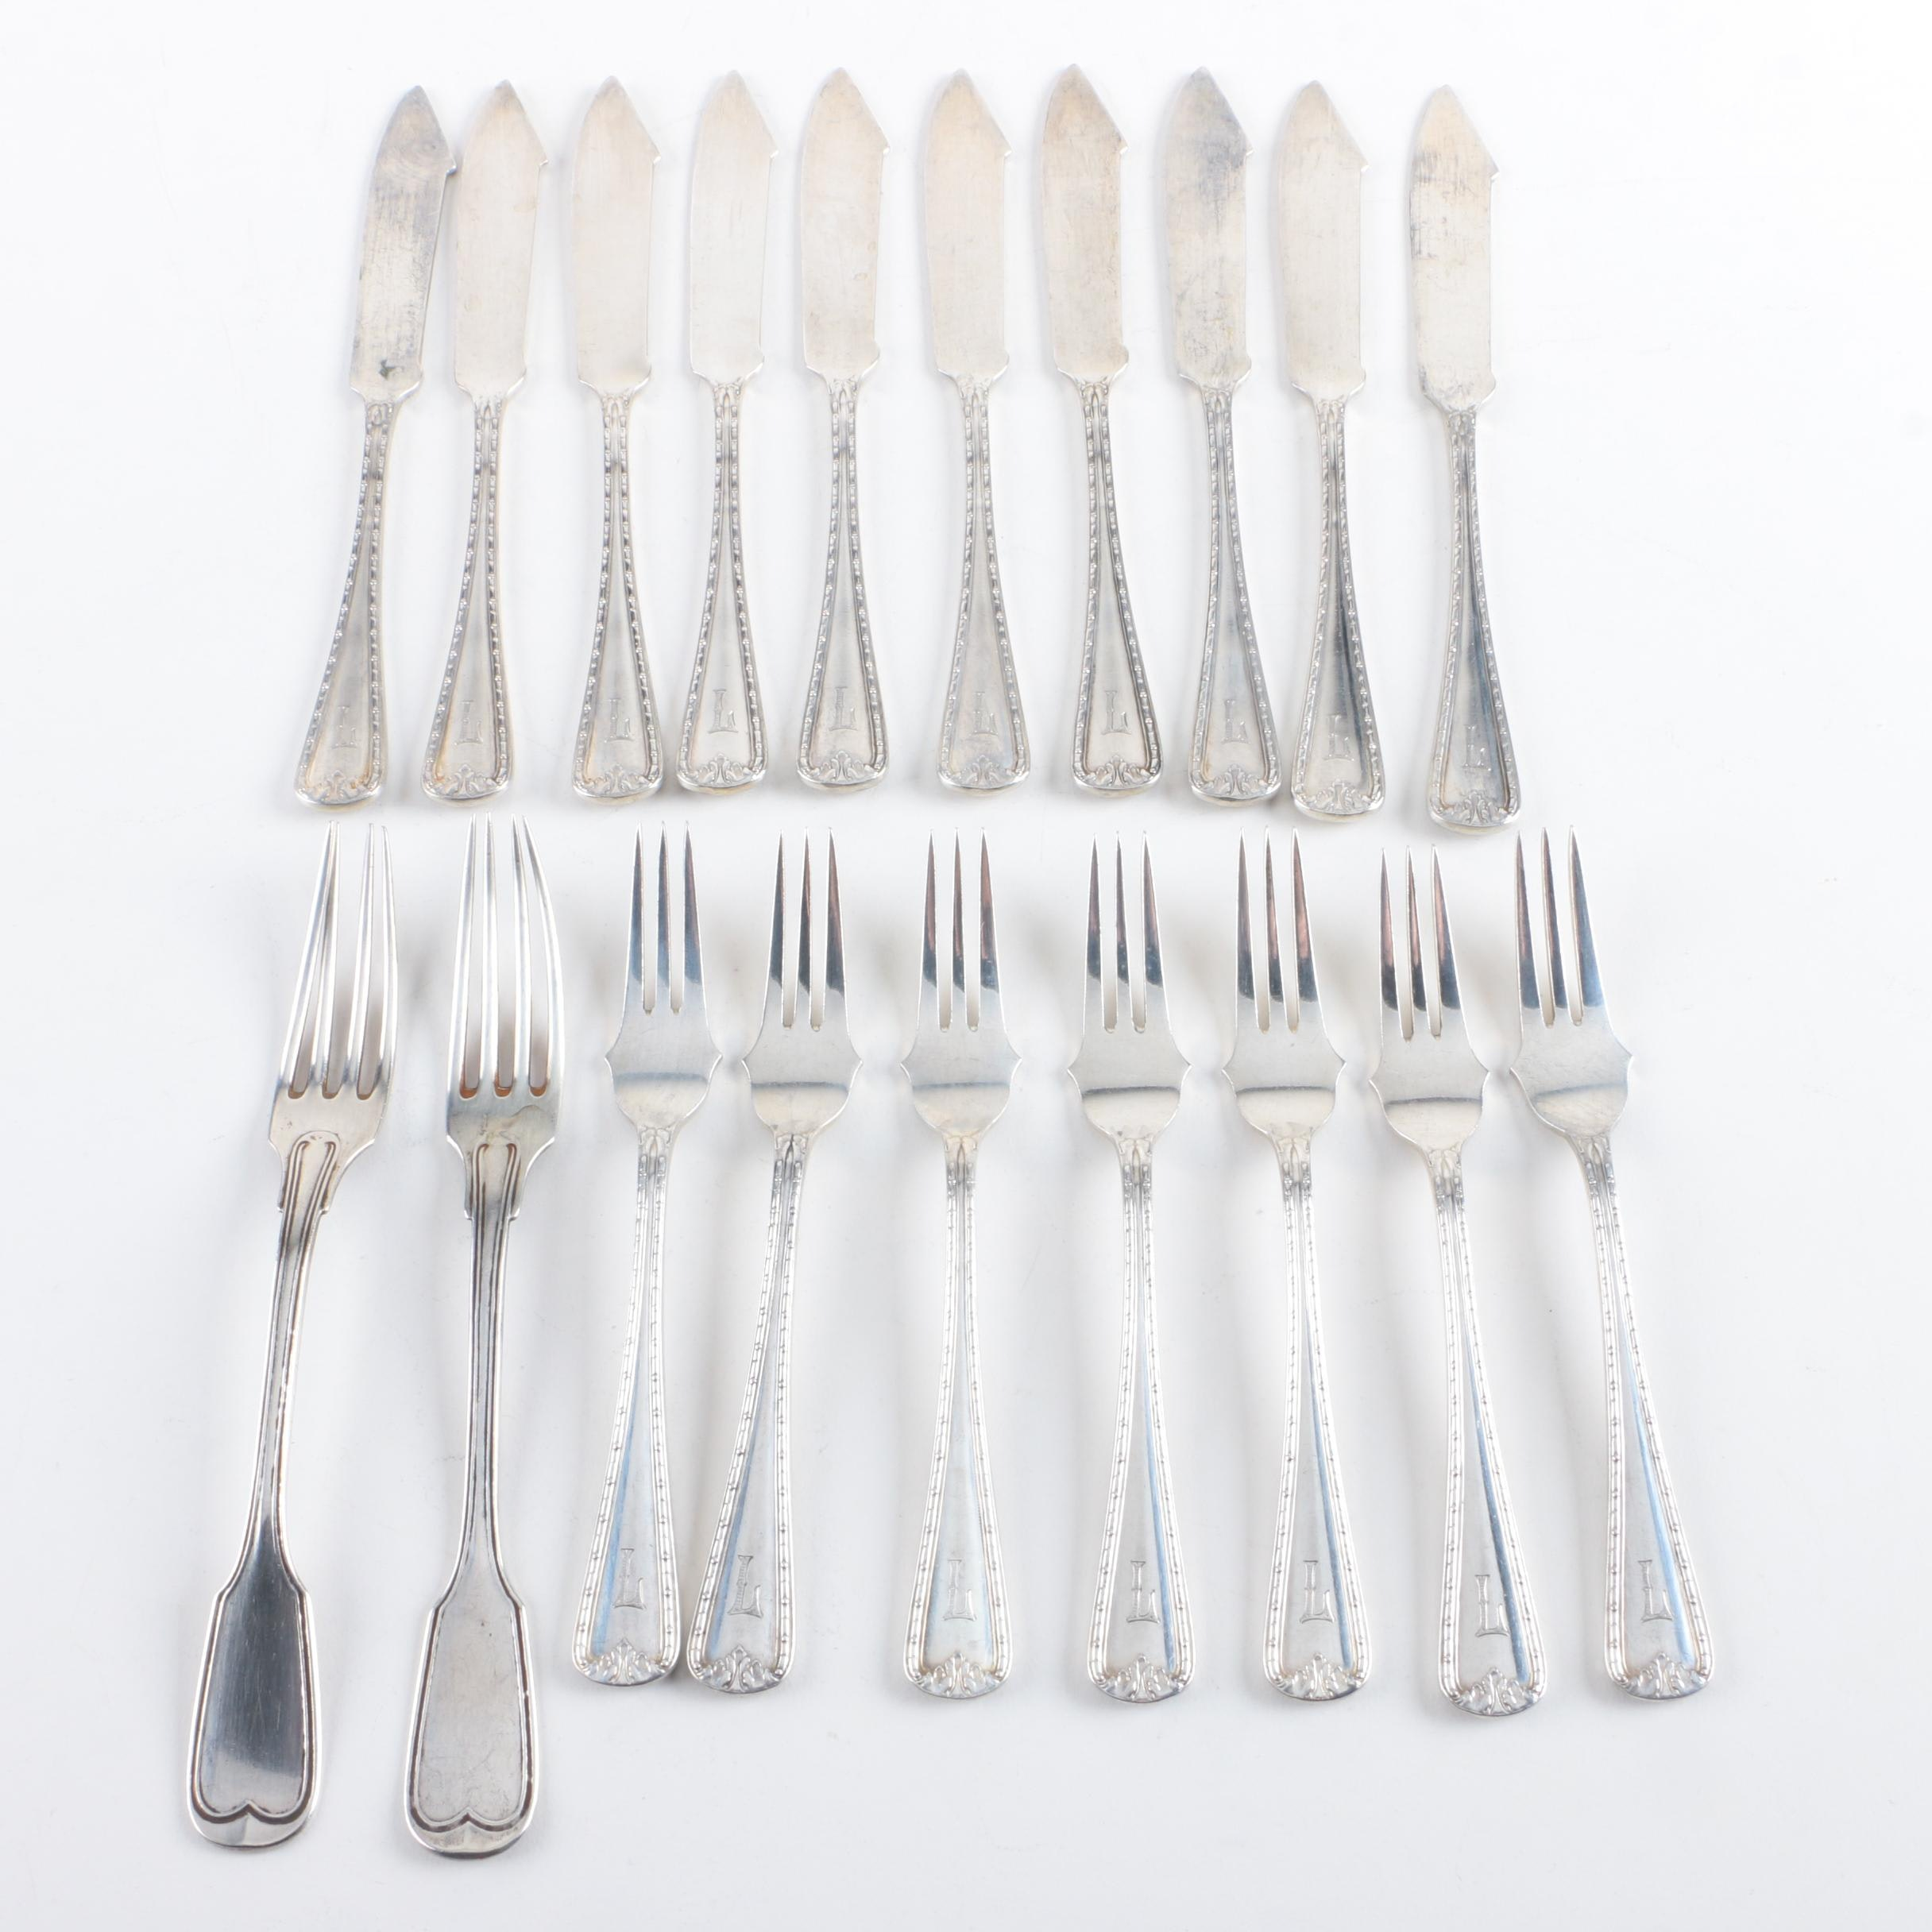 Lowenthal German 800 Silver Flatware